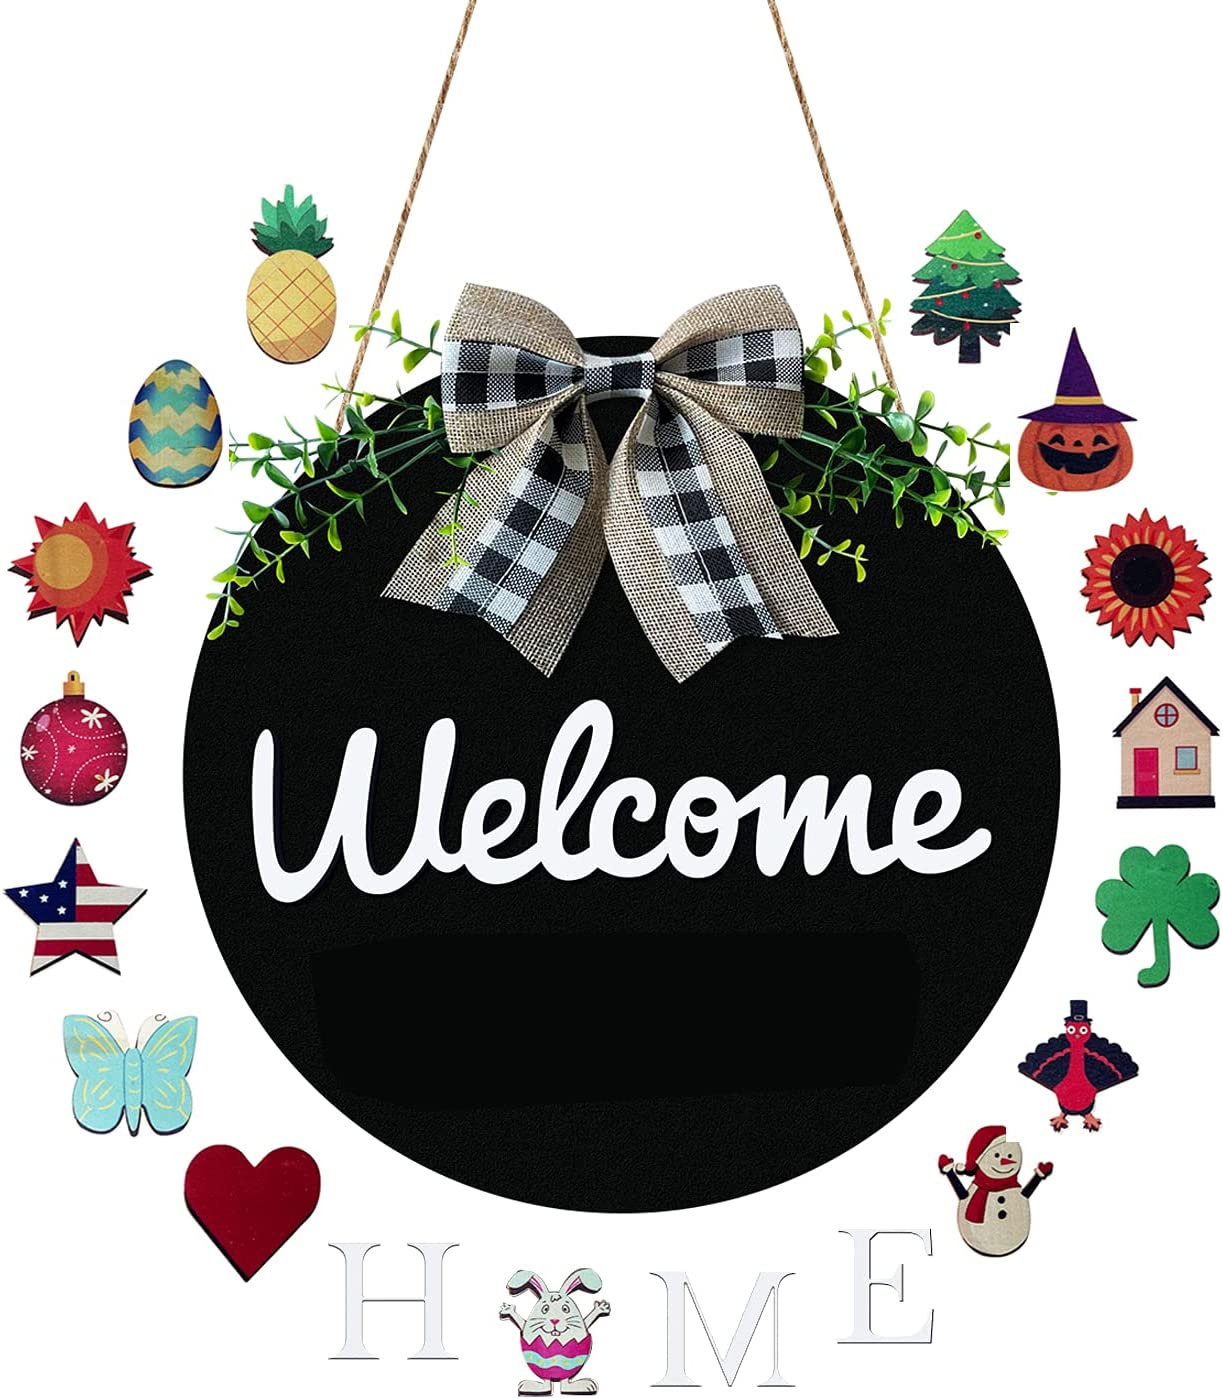 Apuppcvd Welcome Sign for Front Door,Round Wooden Welcome home Sign Hanging Outdoor Front Door Decor for Farmhouse Front Porch Restaurant Holiday Decor for Spring Easter Christmas Winters (Black)